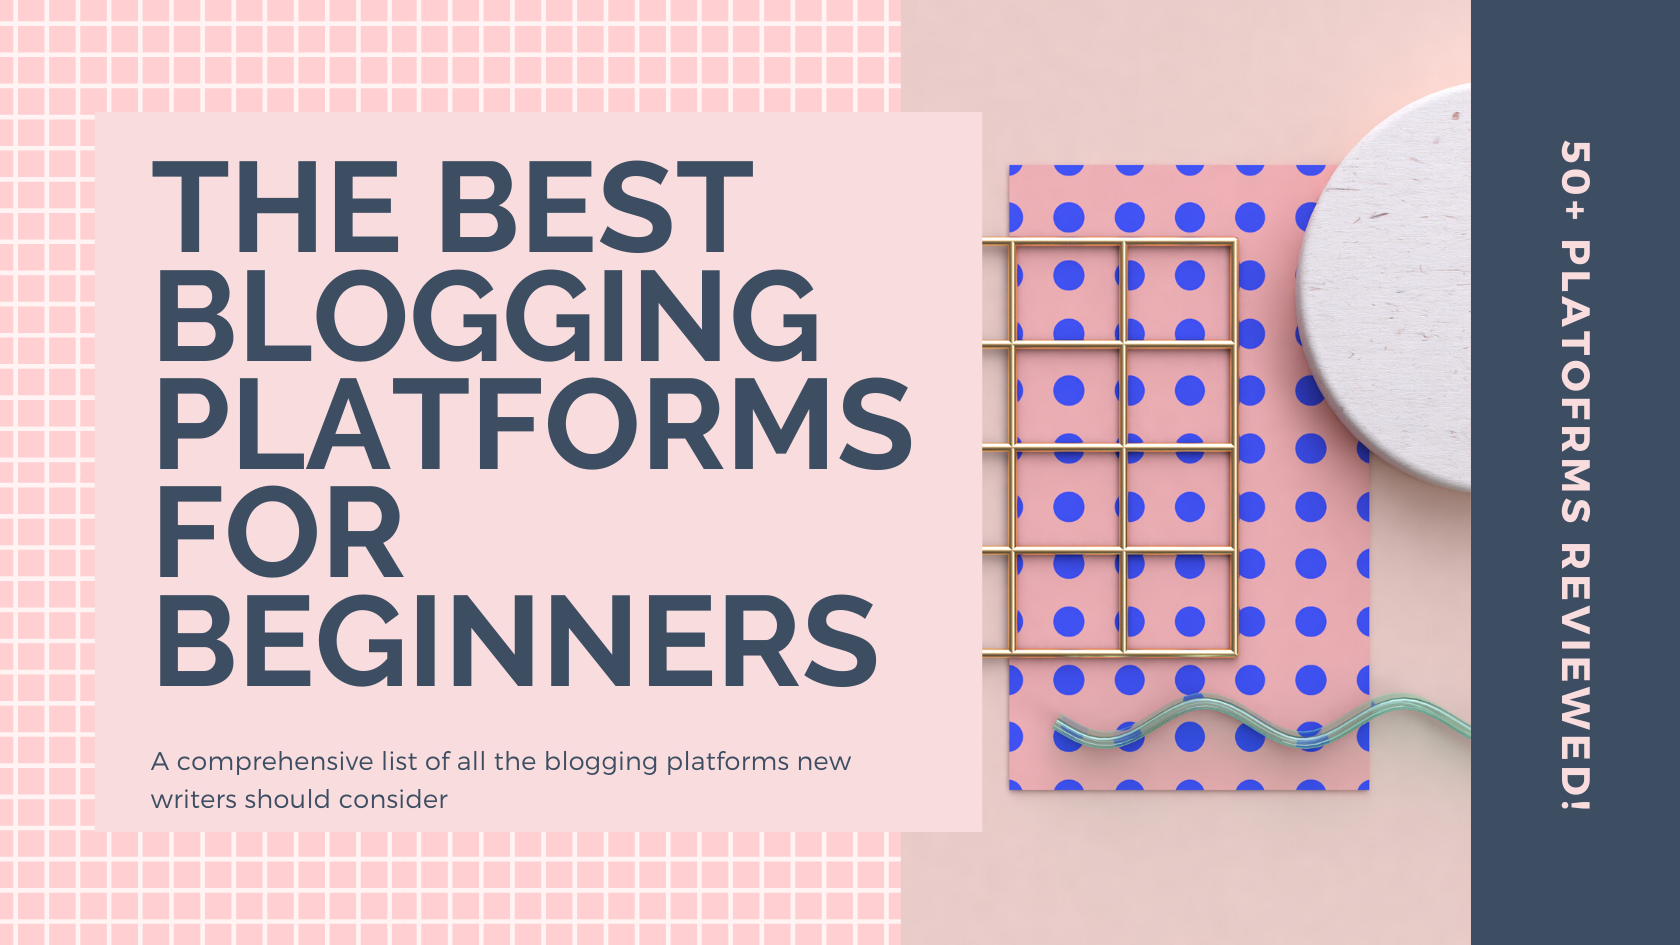 best blogs for beginners, blogging for beginners, best blogging platform free, best blogging platform 2020, blogging guide